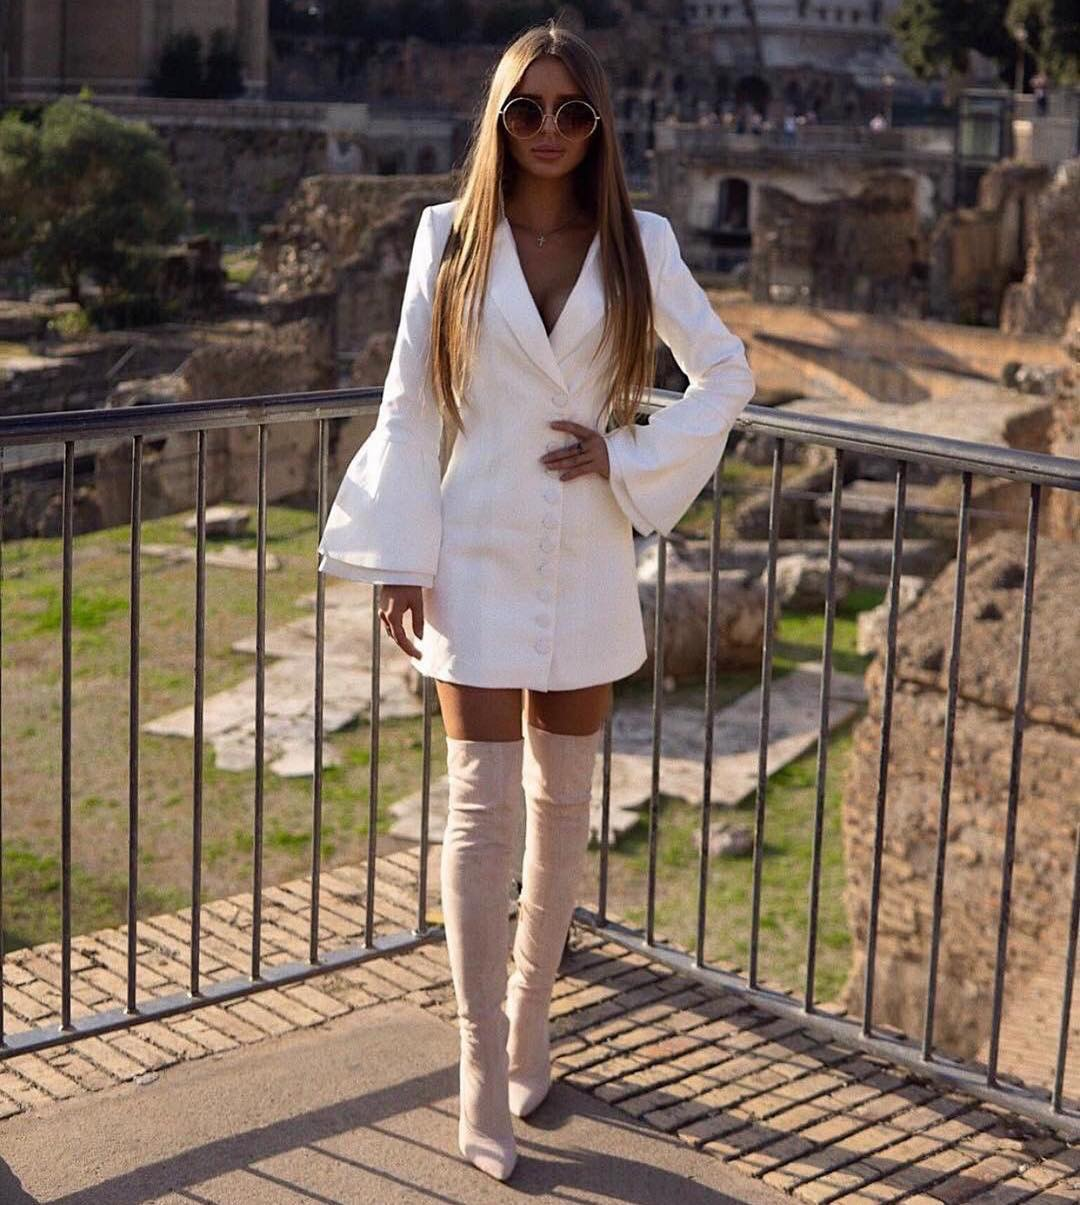 ce8cb46a53 Bell Sleeve White Blazer Dress And Beige OTK Boots 2019 ...